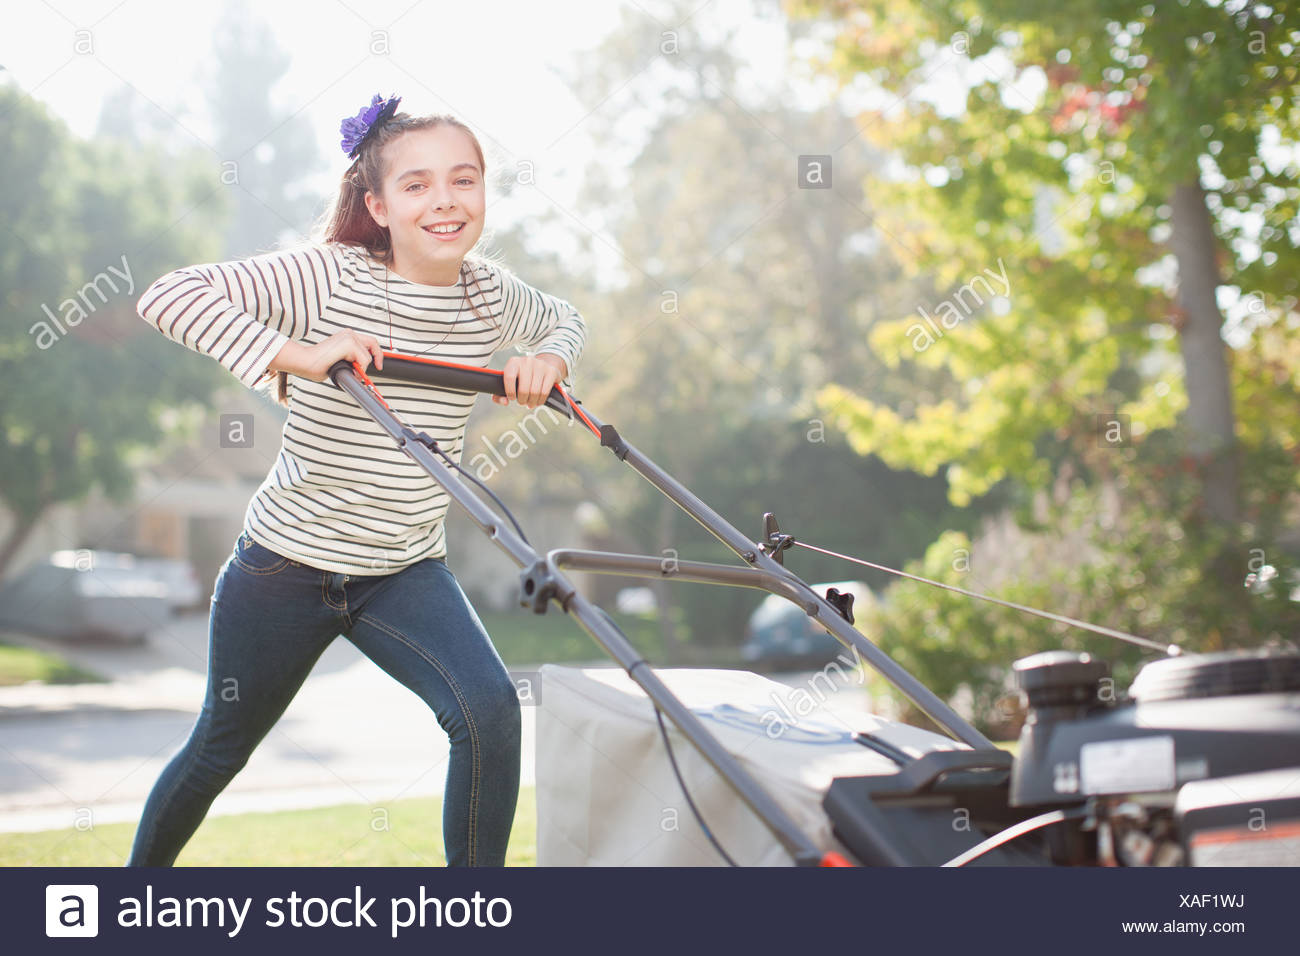 Girl mowing lawn - Stock Image